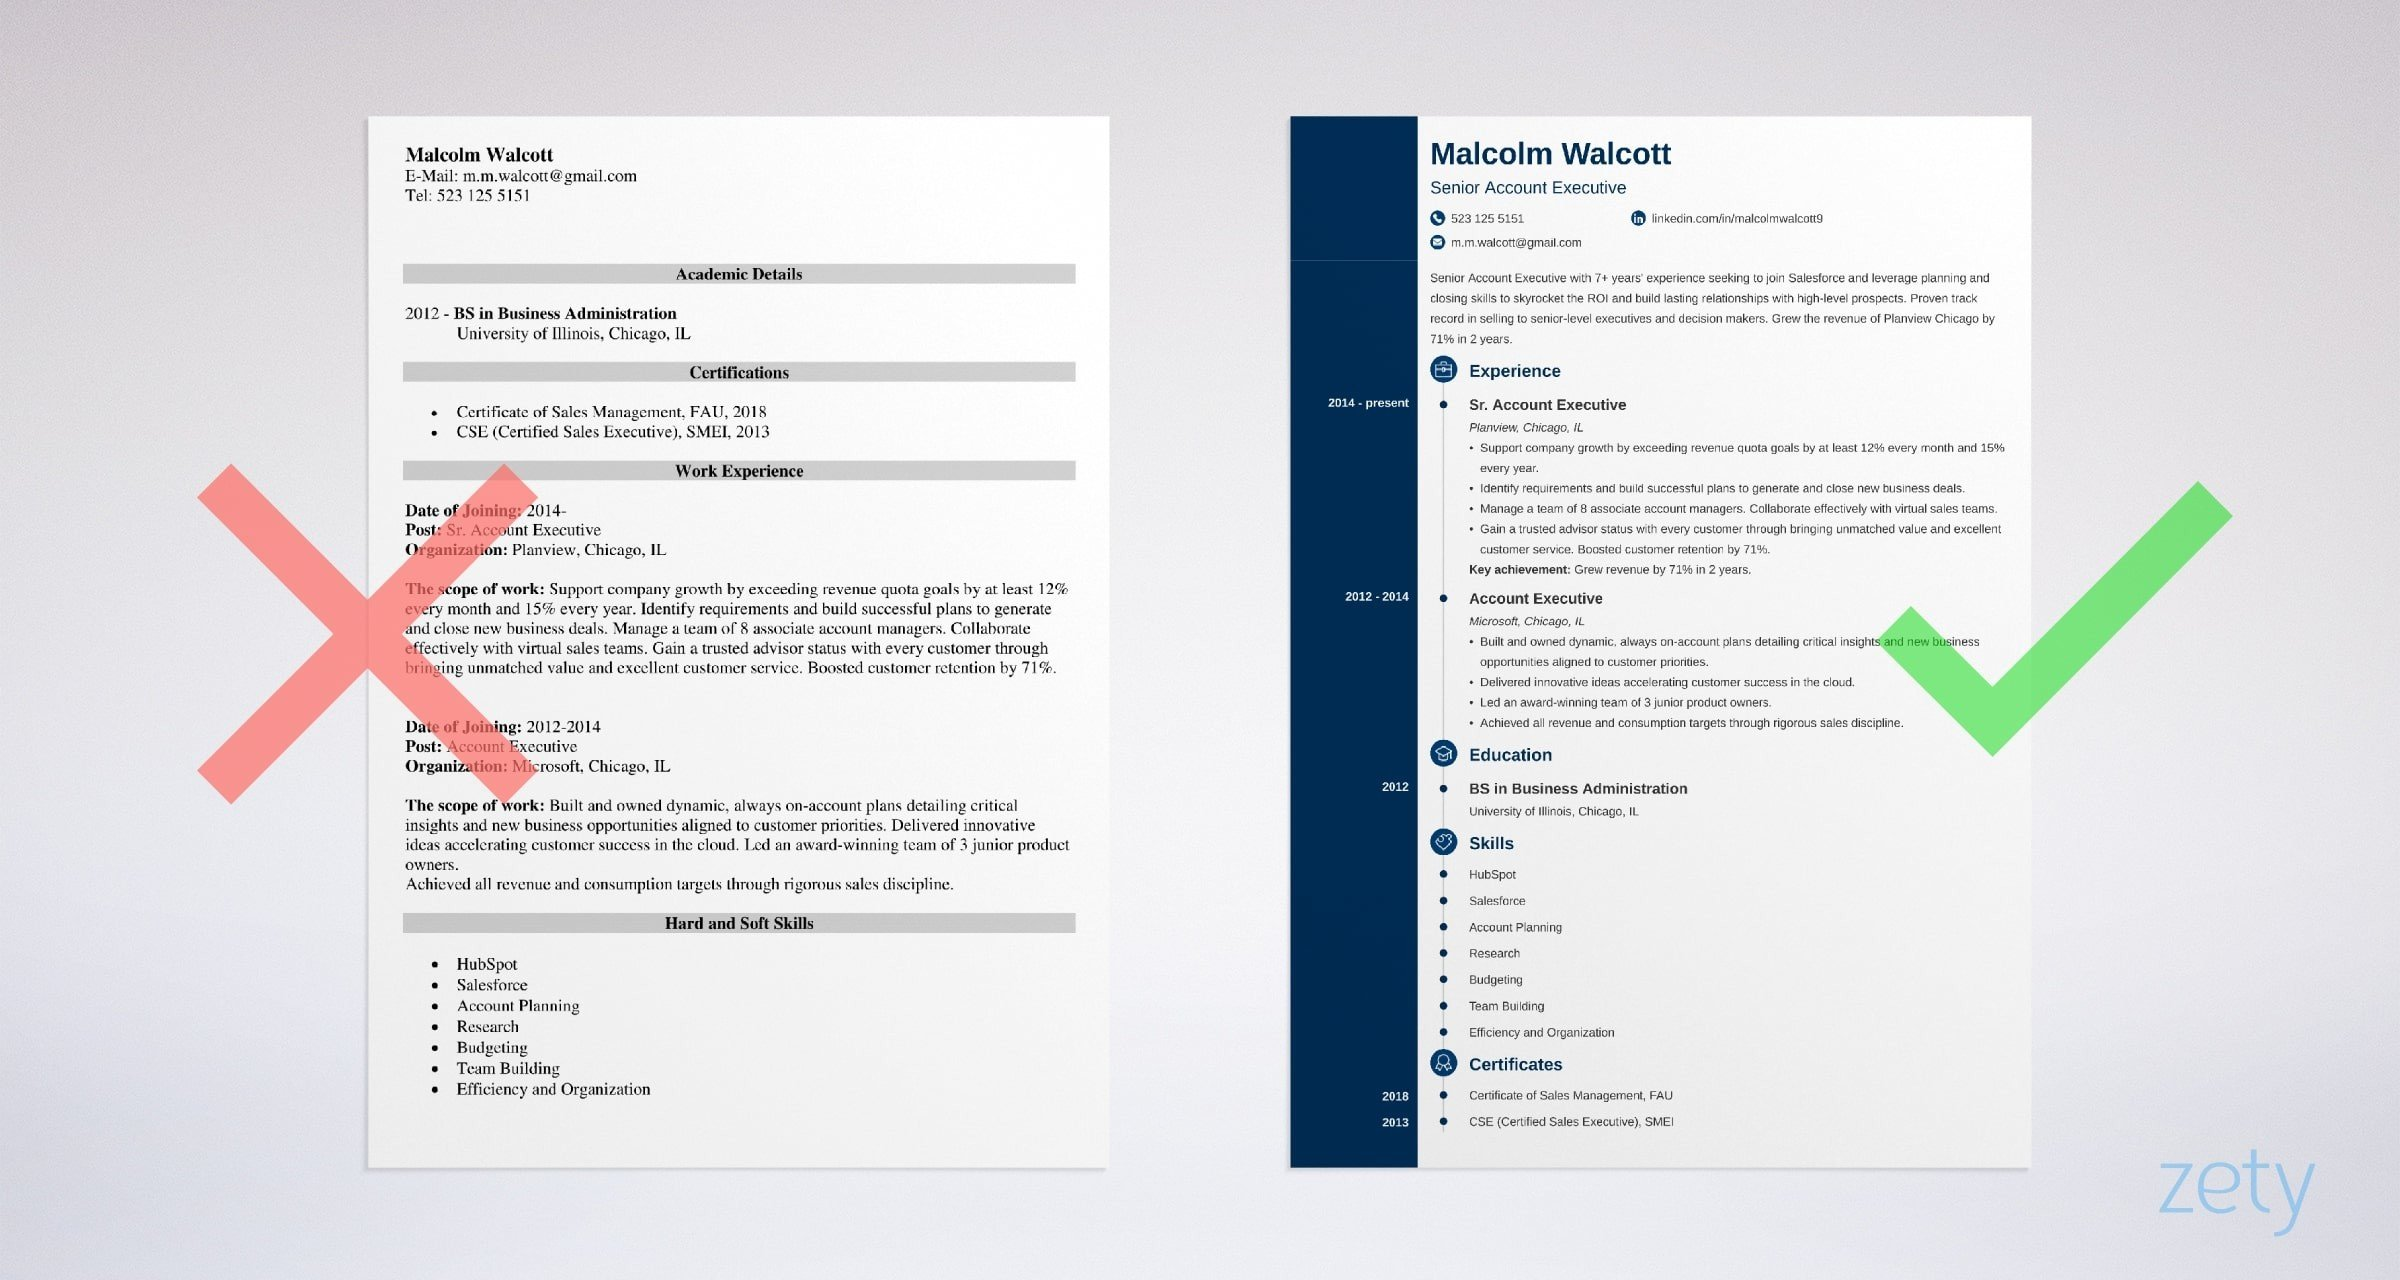 accounting executive resume template mt home arts account examples example collections Resume Account Executive Resume Examples